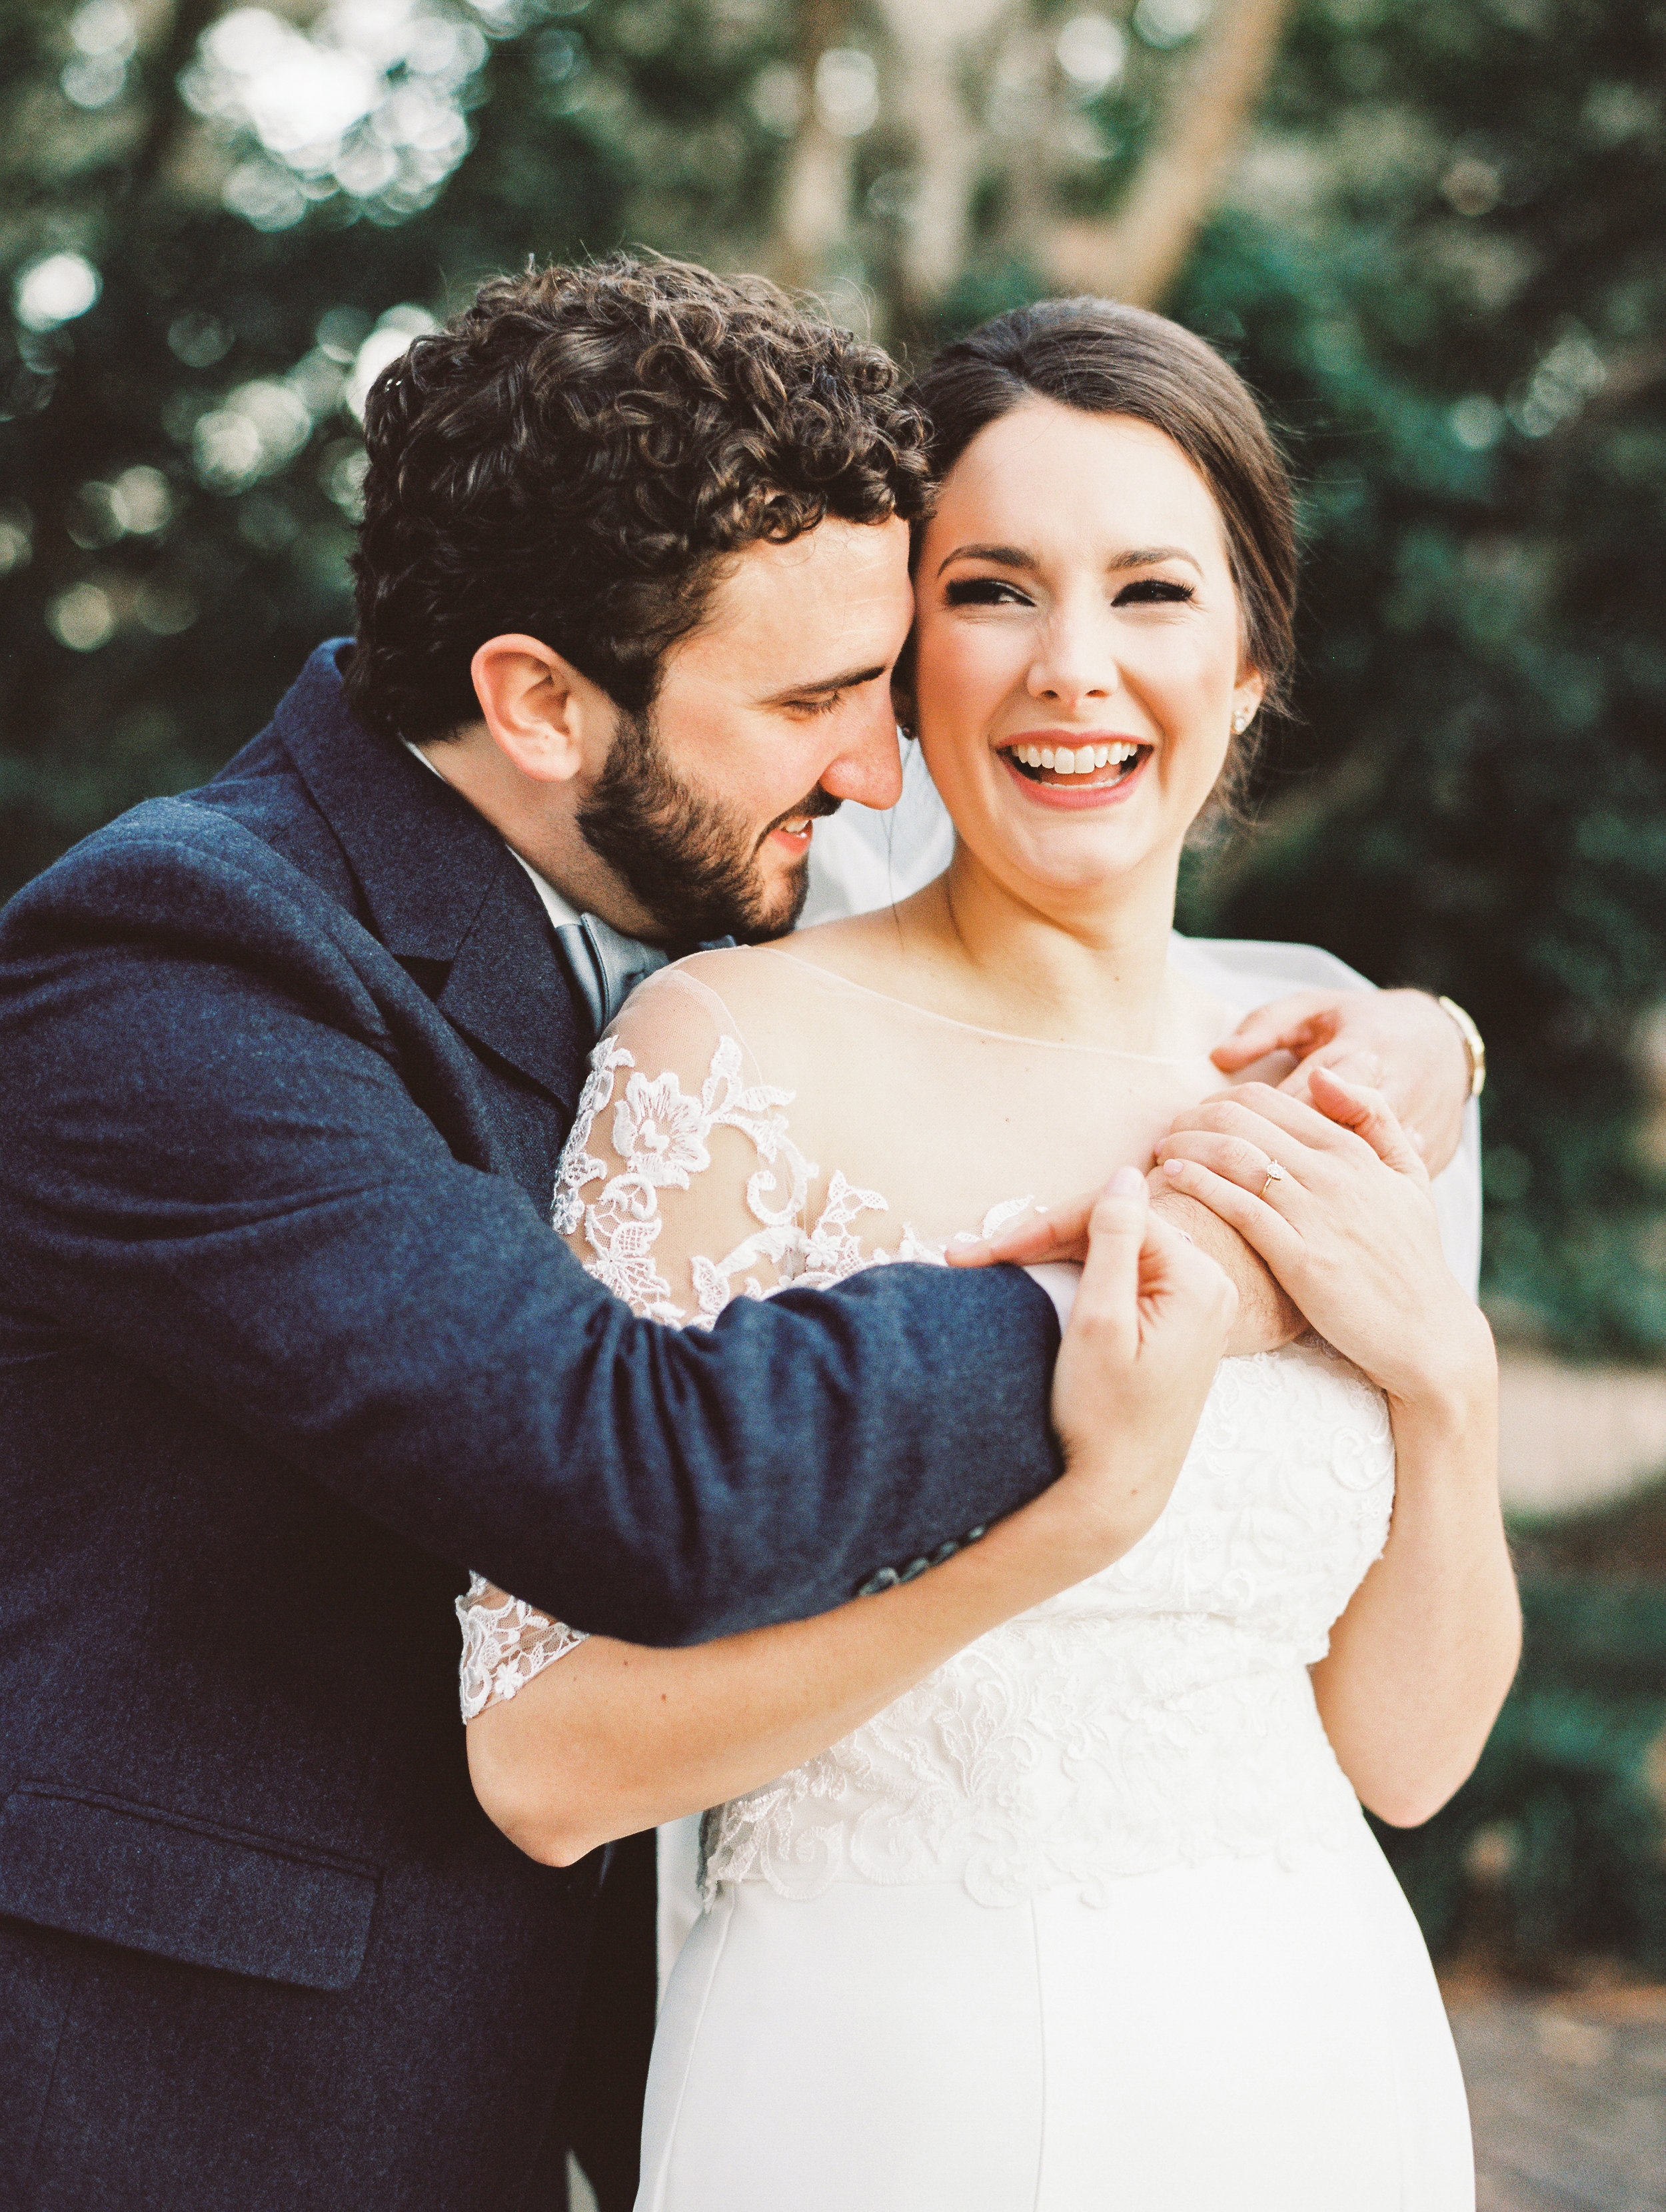 Southern Fete, Southern Wedding, Sarah Beth Photography, Bride and Groom Moment, The Beauty Room, Beauty by Victoria